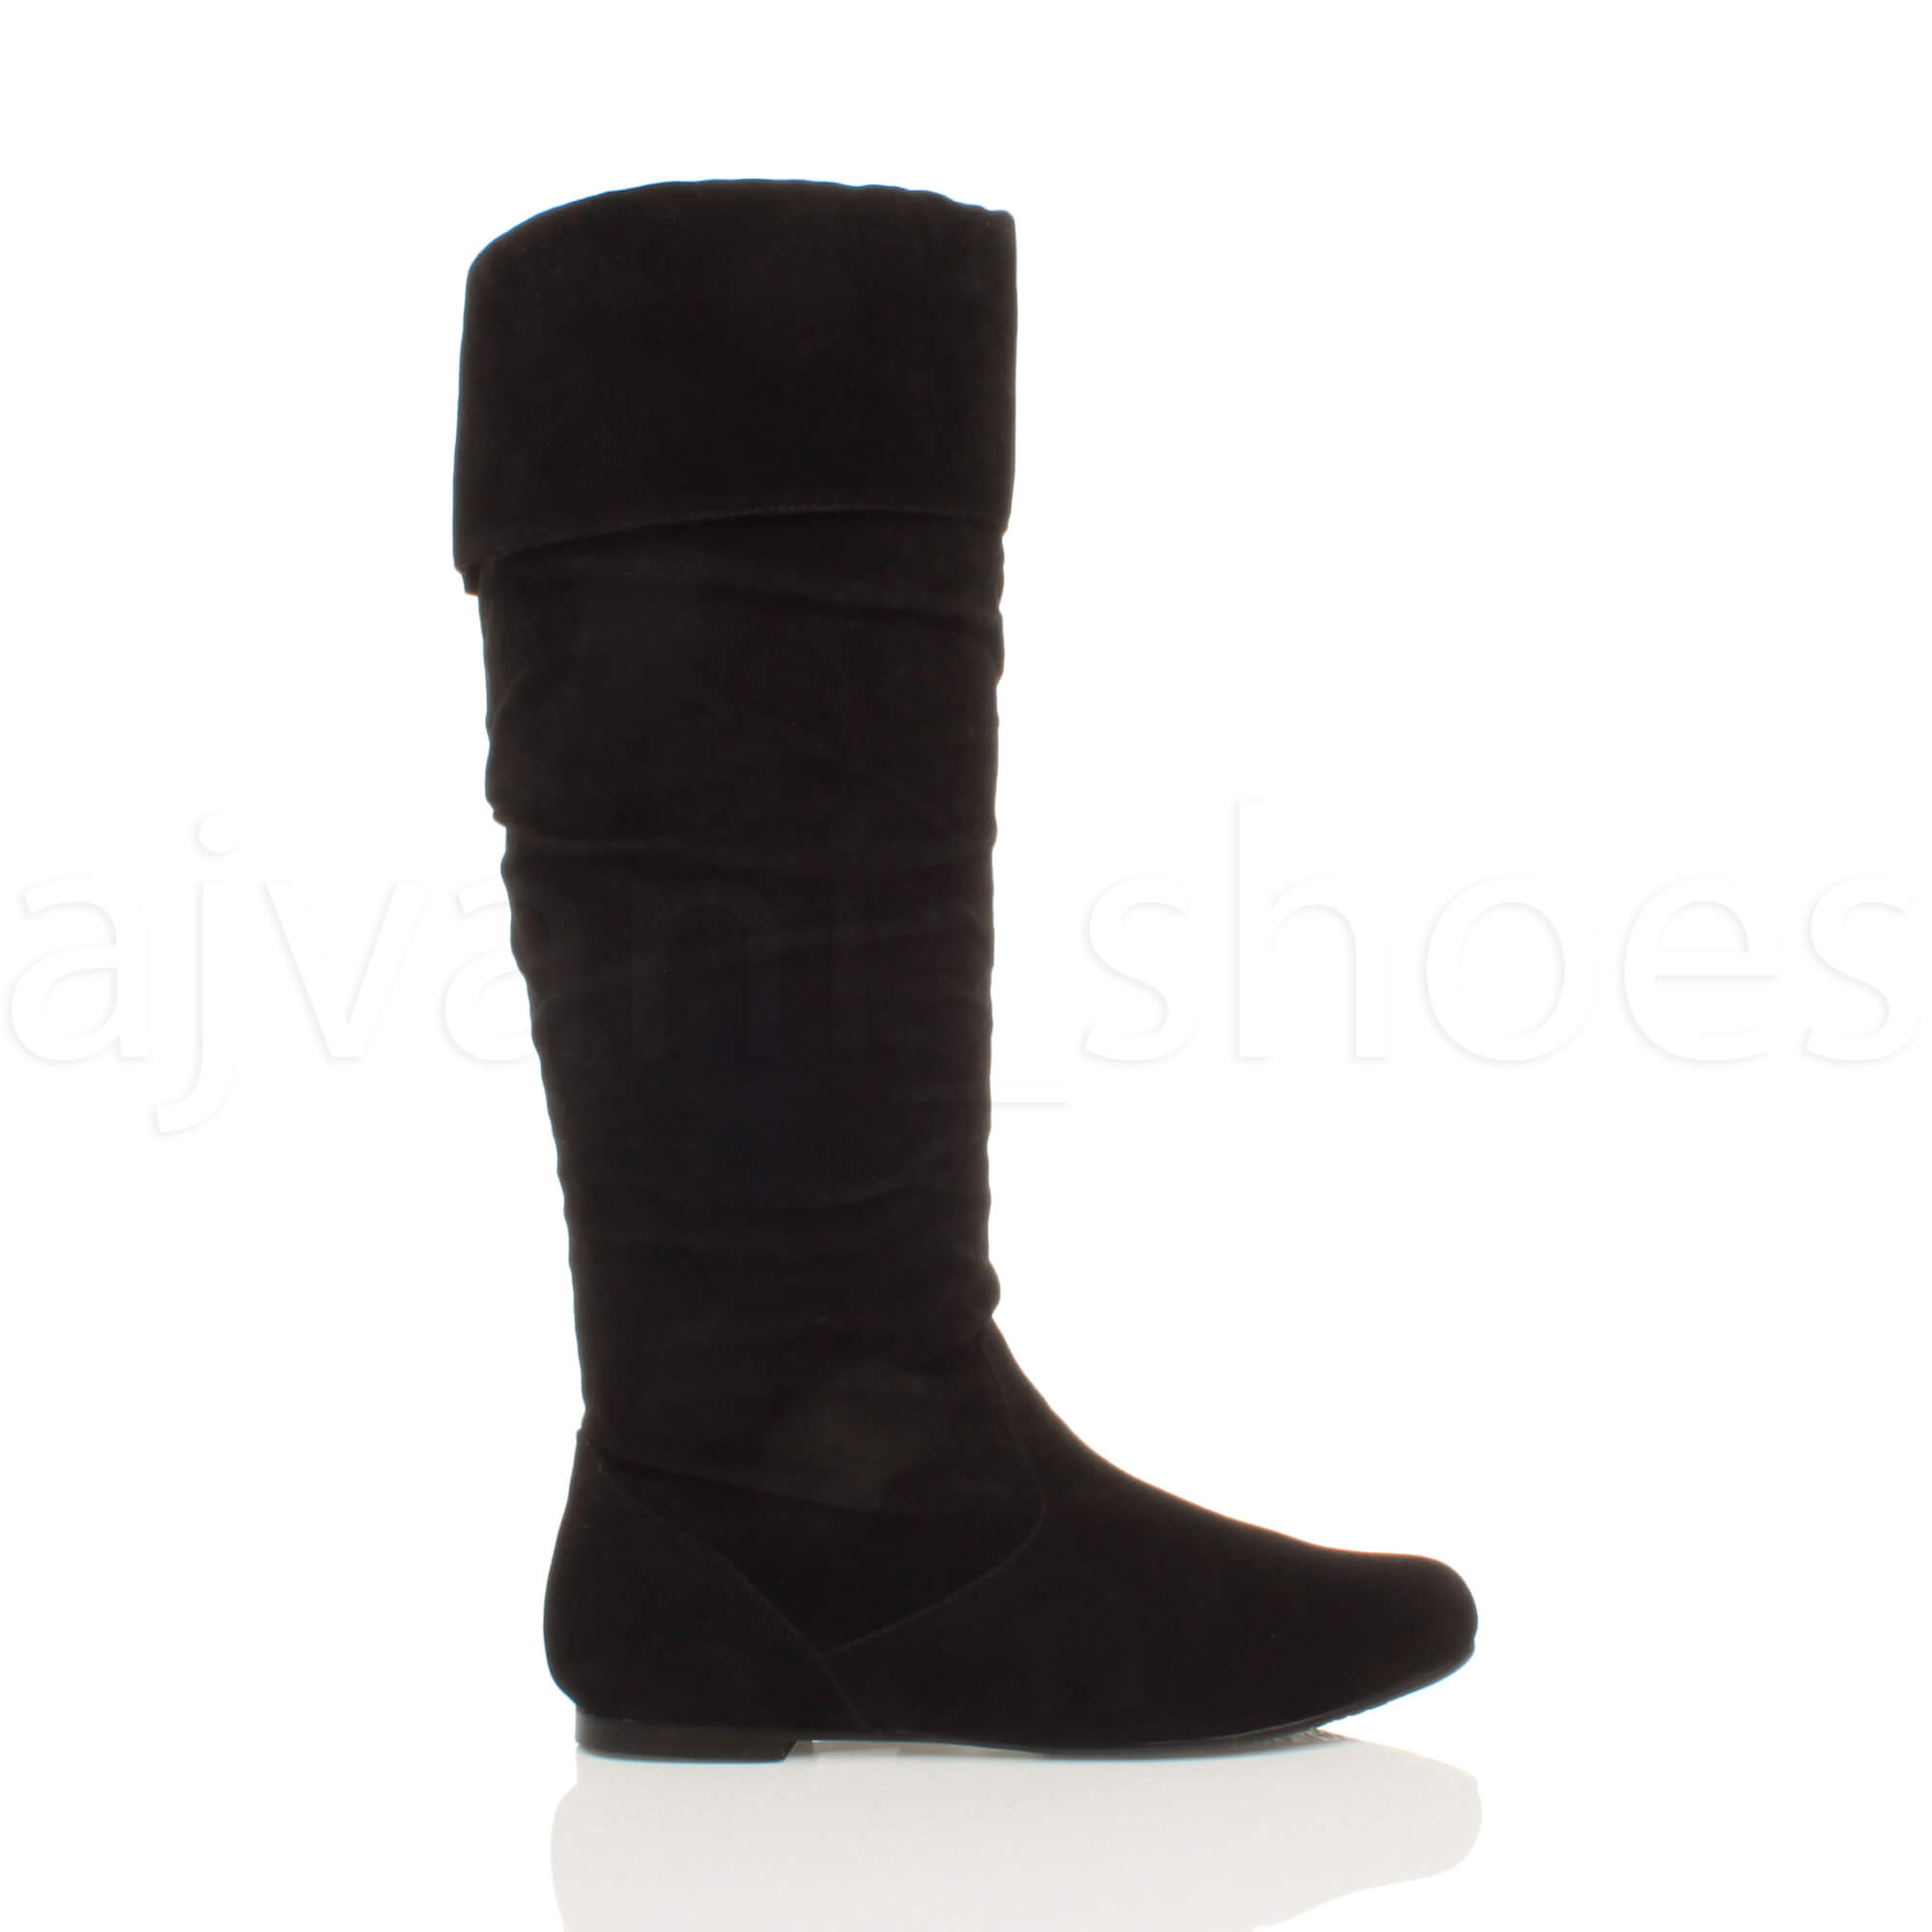 WOMENS LADIES FLAT CUFF KNEE HIGH PULL ON SLOUCH BOOTS SIZE